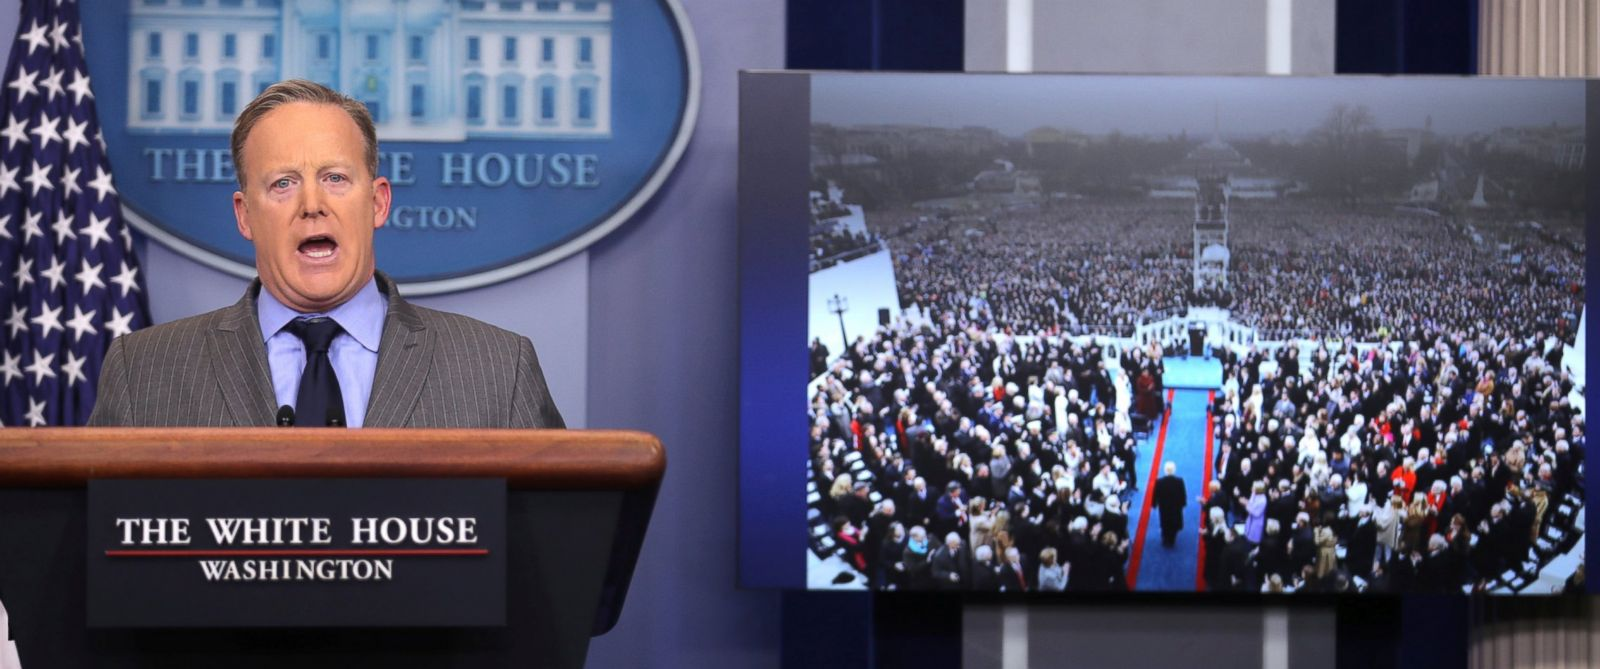 PHOTO:Press Secretary Sean Spicer delivers a statement while television screen show a picture of U.S. President Donald Trumps inauguration at the press briefing room of the White House in Washington, January 21, 2017.